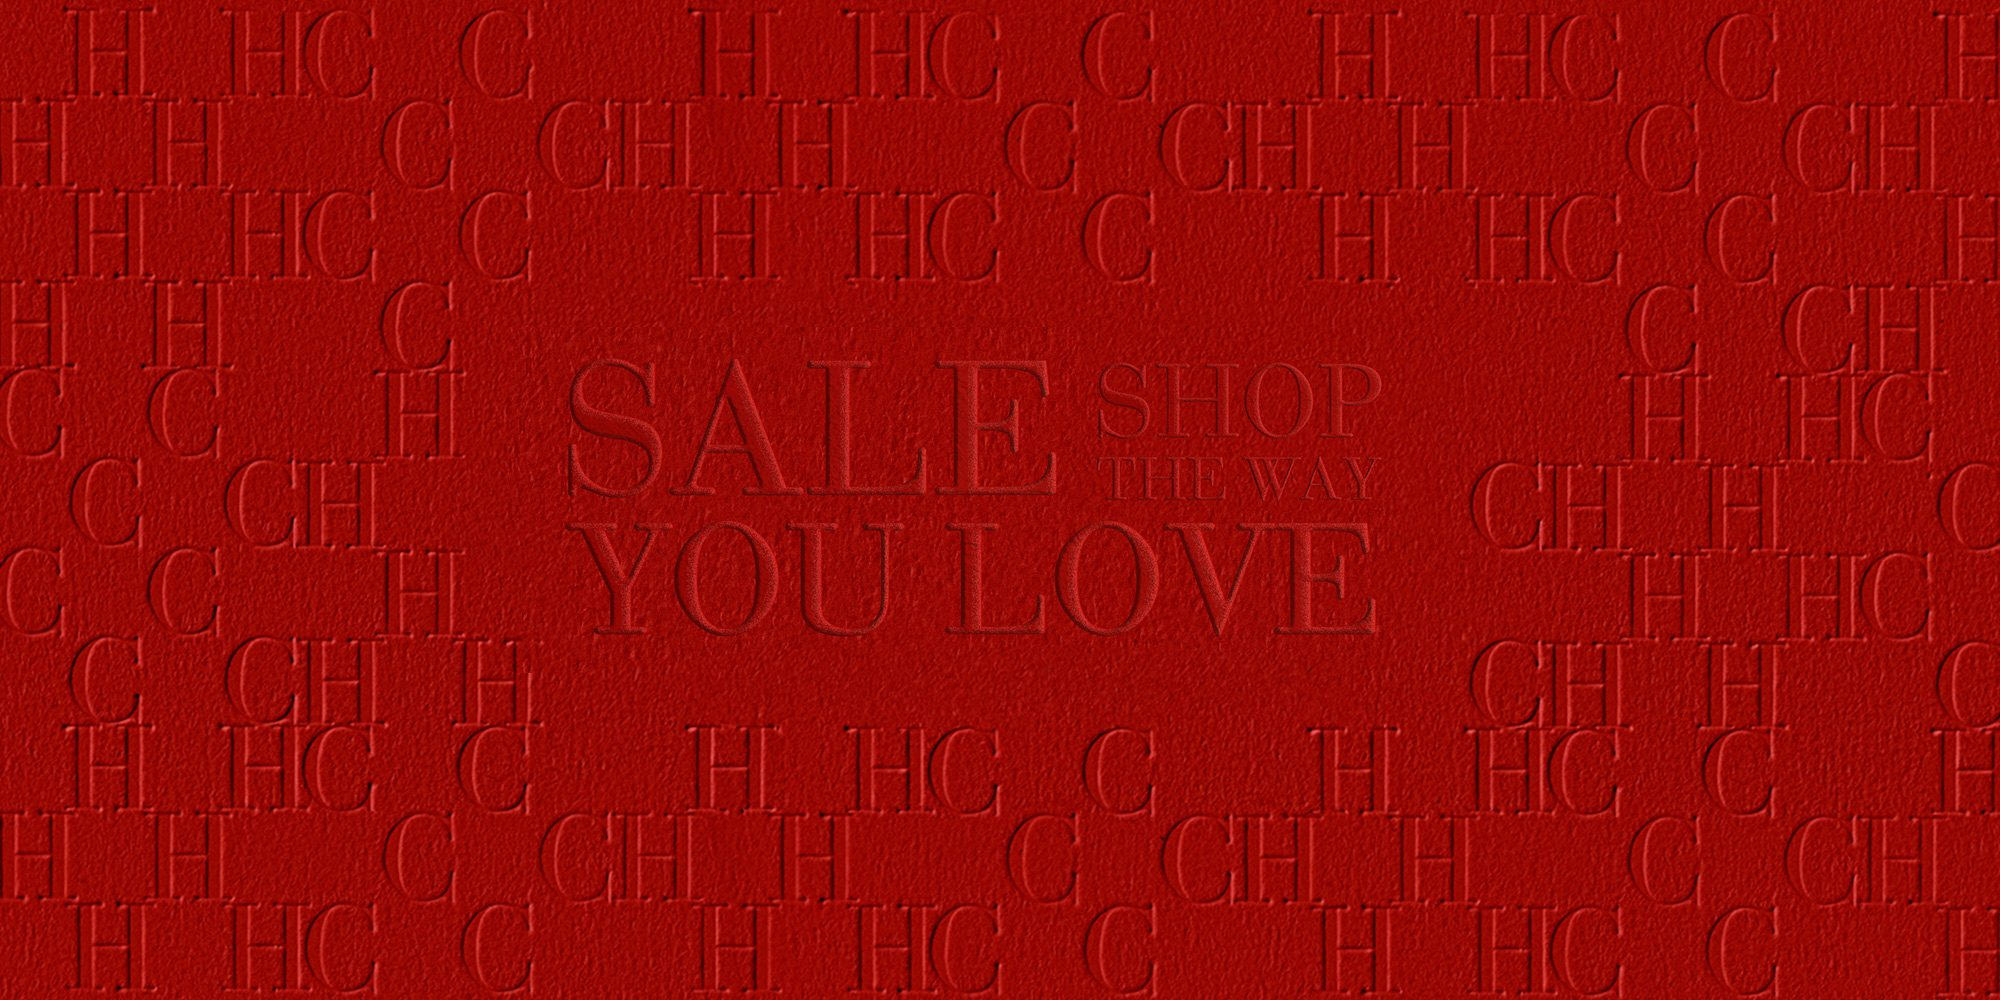 SHOP THE WAY YOU LOVE  SALES